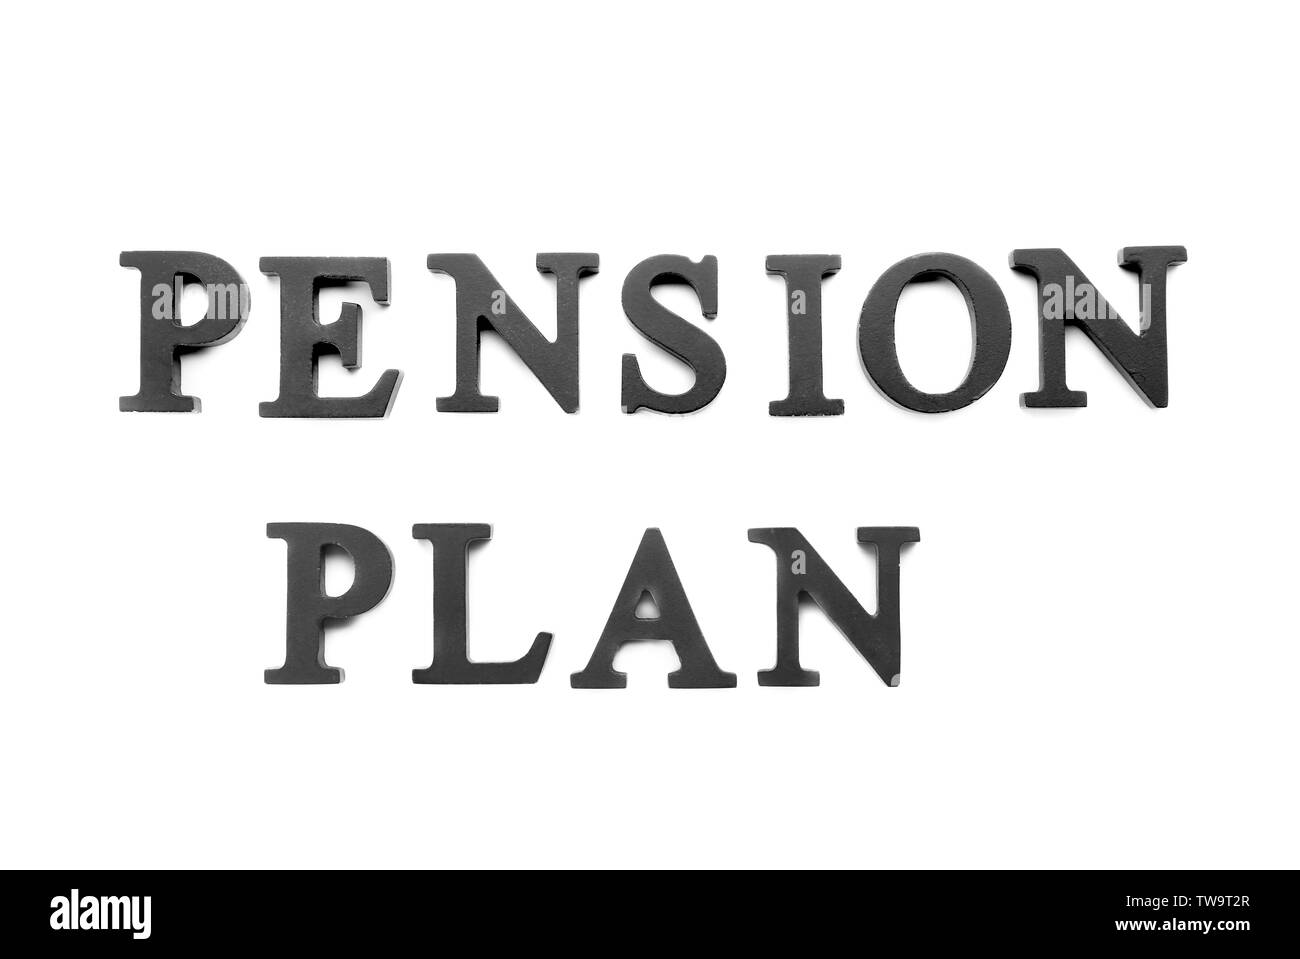 Words 'Pension plan' on white background - Stock Image